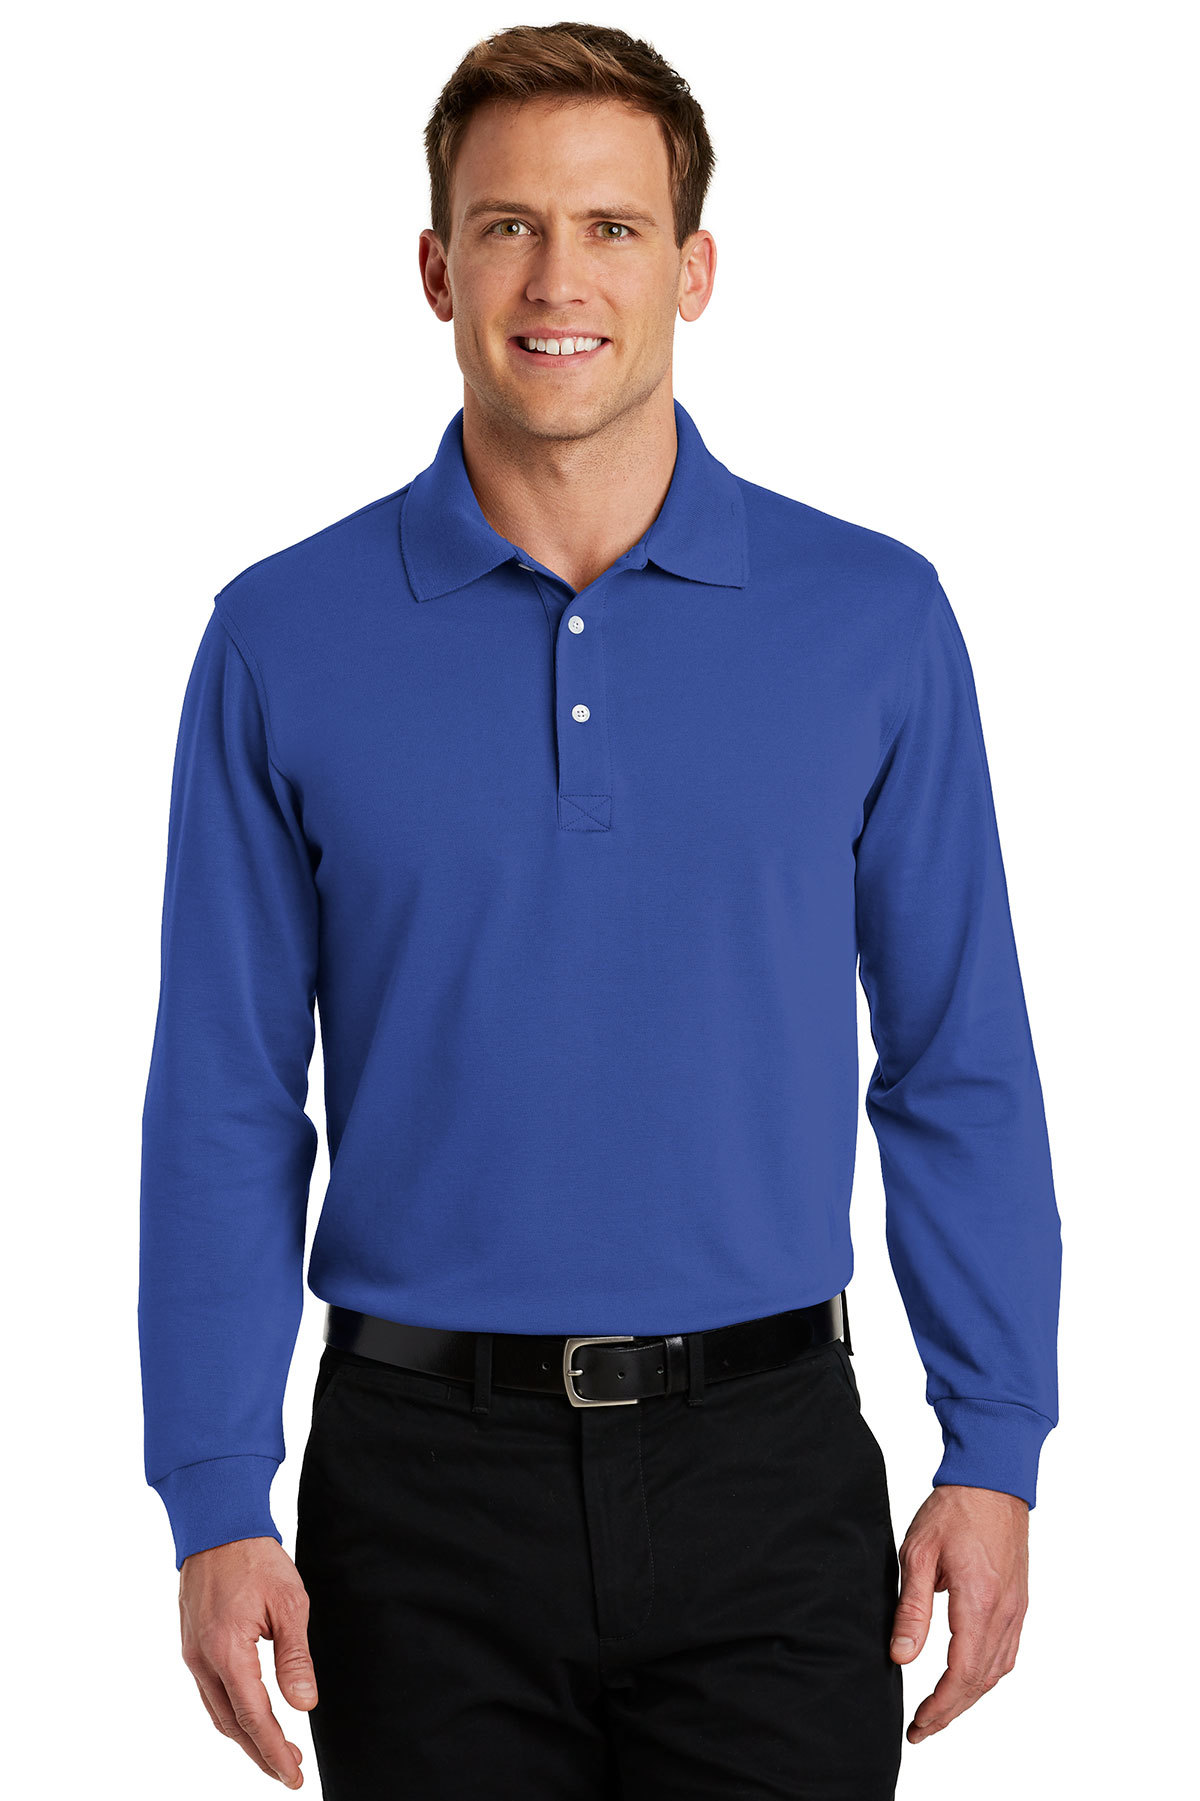 049209fb6ae Port Authority® Rapid Dry™ Long Sleeve Polo